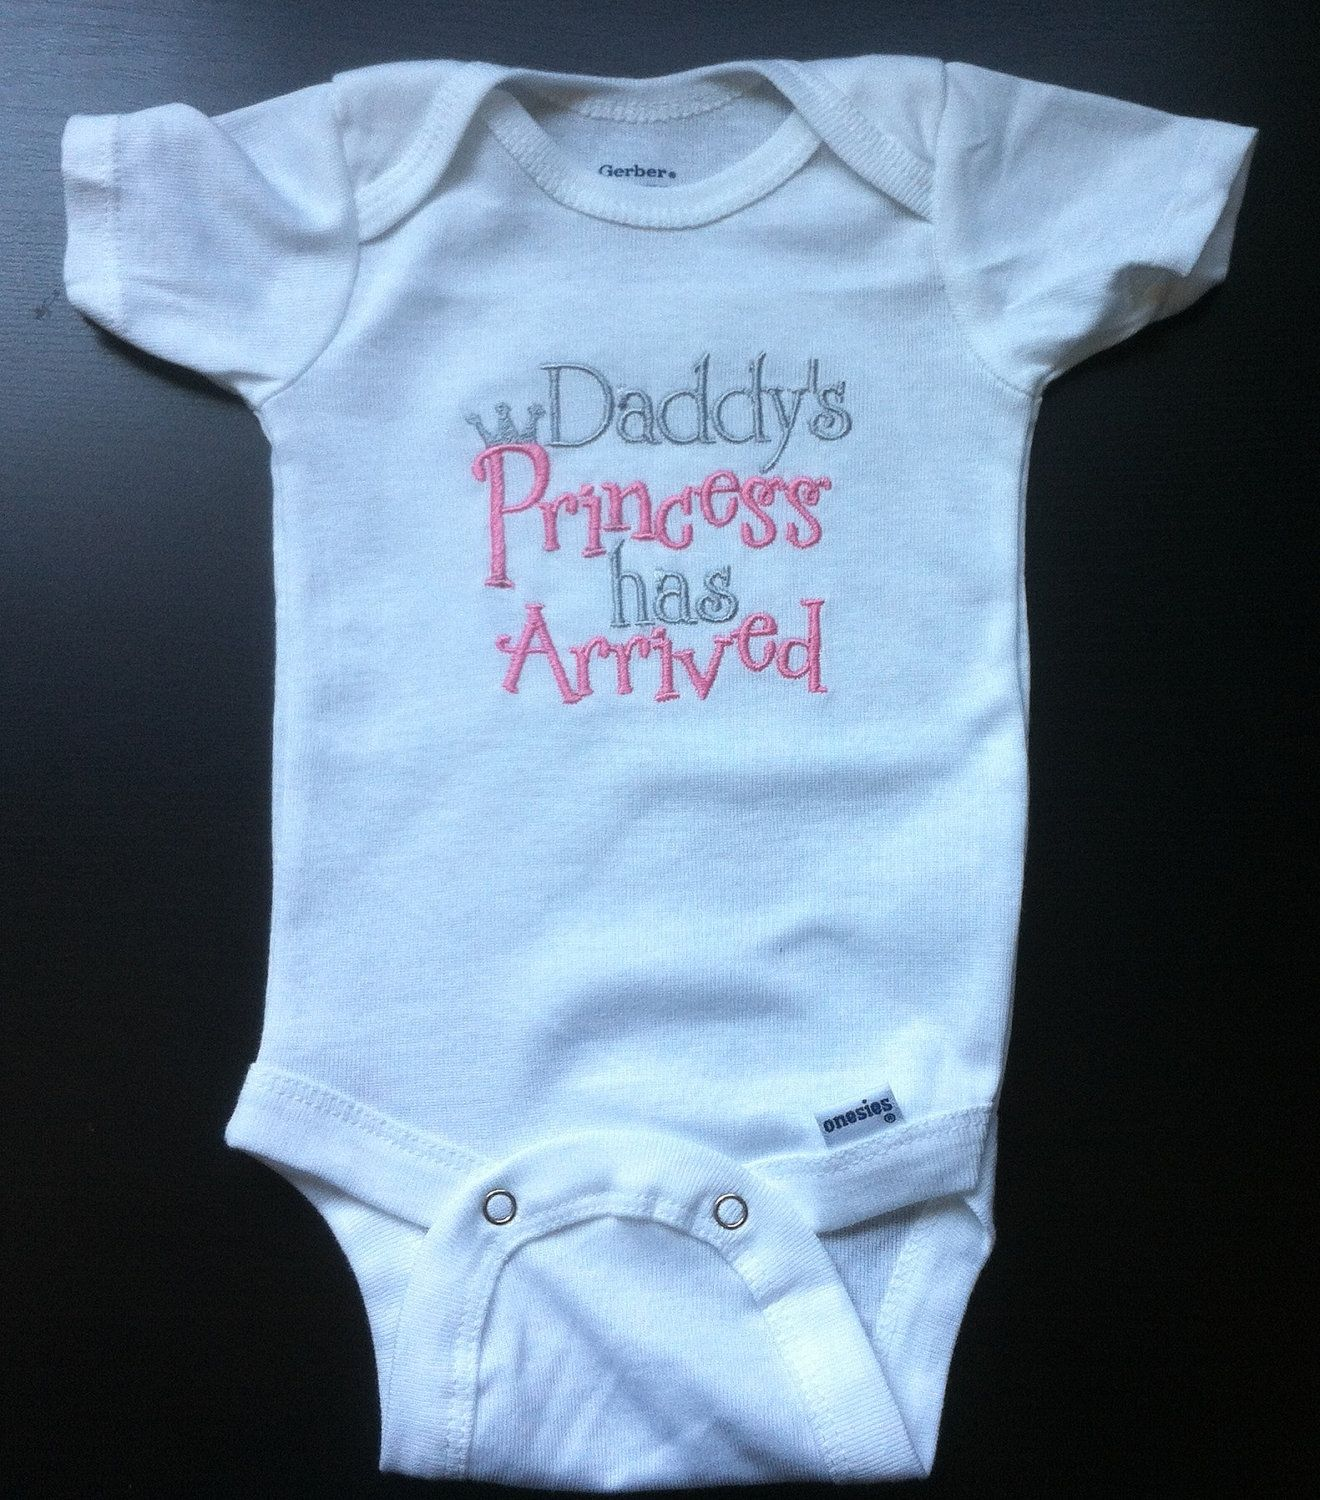 6a8332f82 Daddy's Princess has Arrived Embroidered Onesie. by sidneykarissa, $14.00